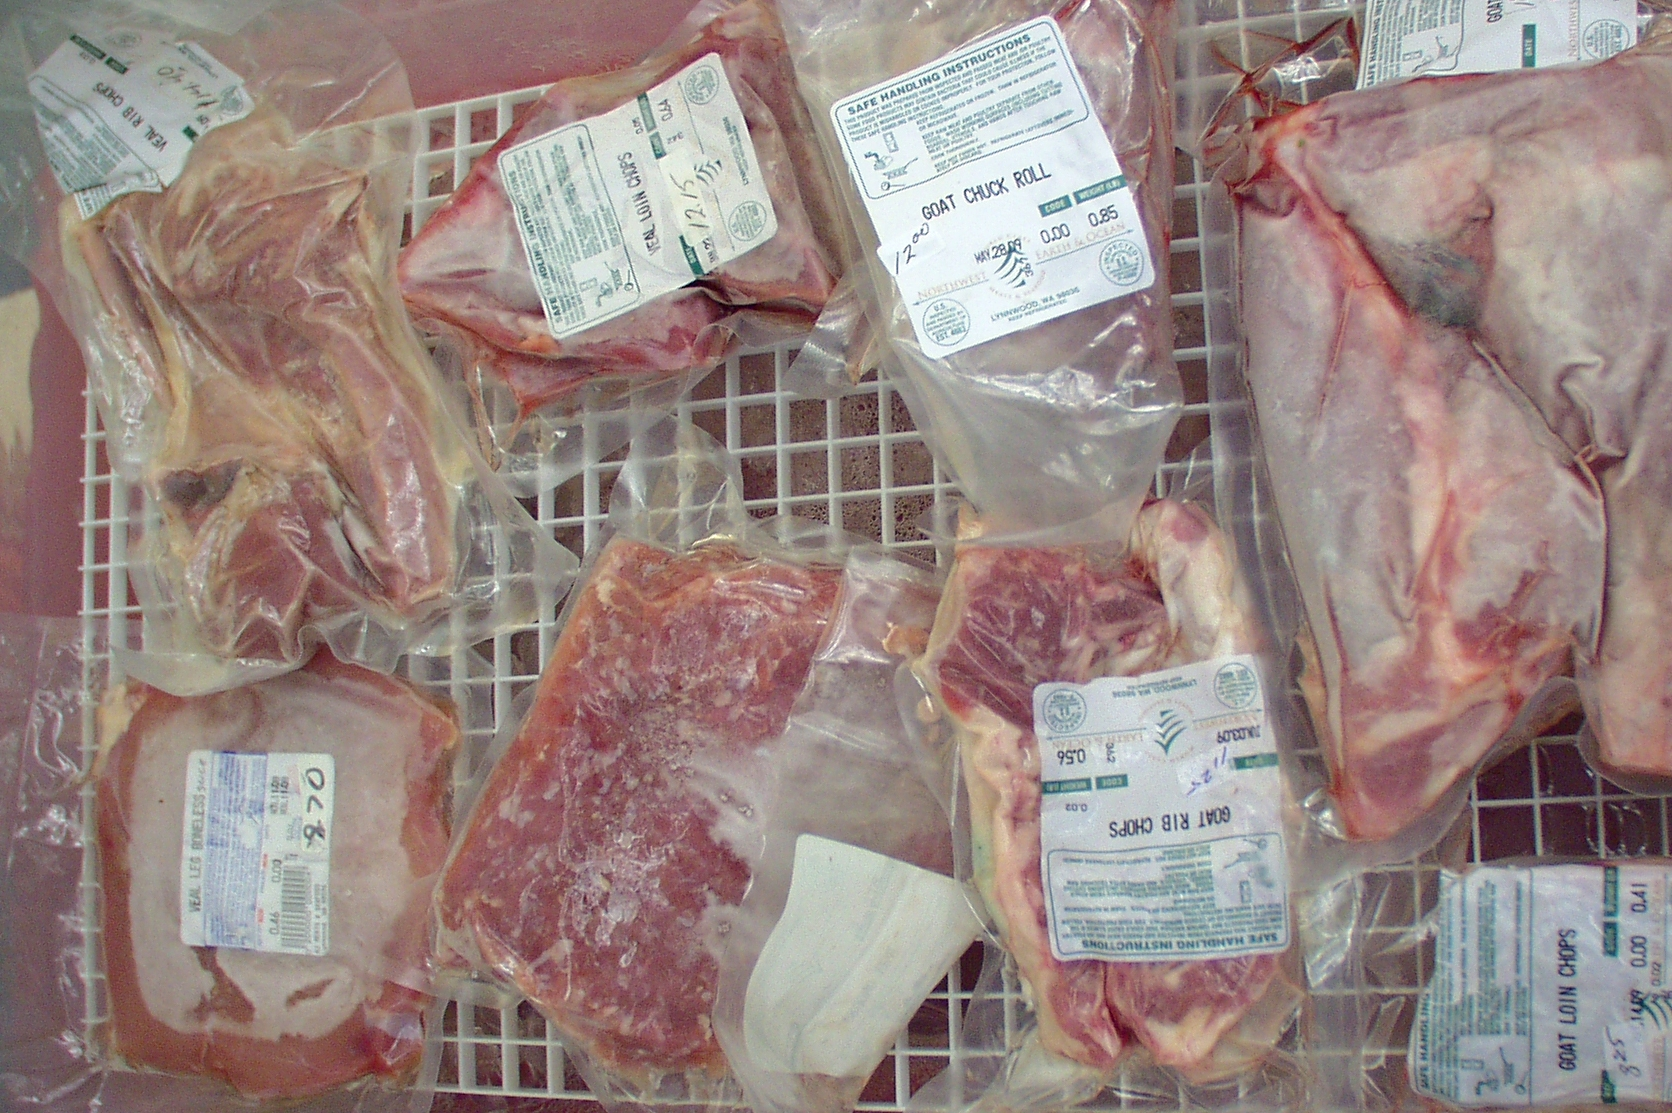 Quilceda Farm's goat meat display at the Market. Photo copyright 2009 by Zachary D. Lyons.